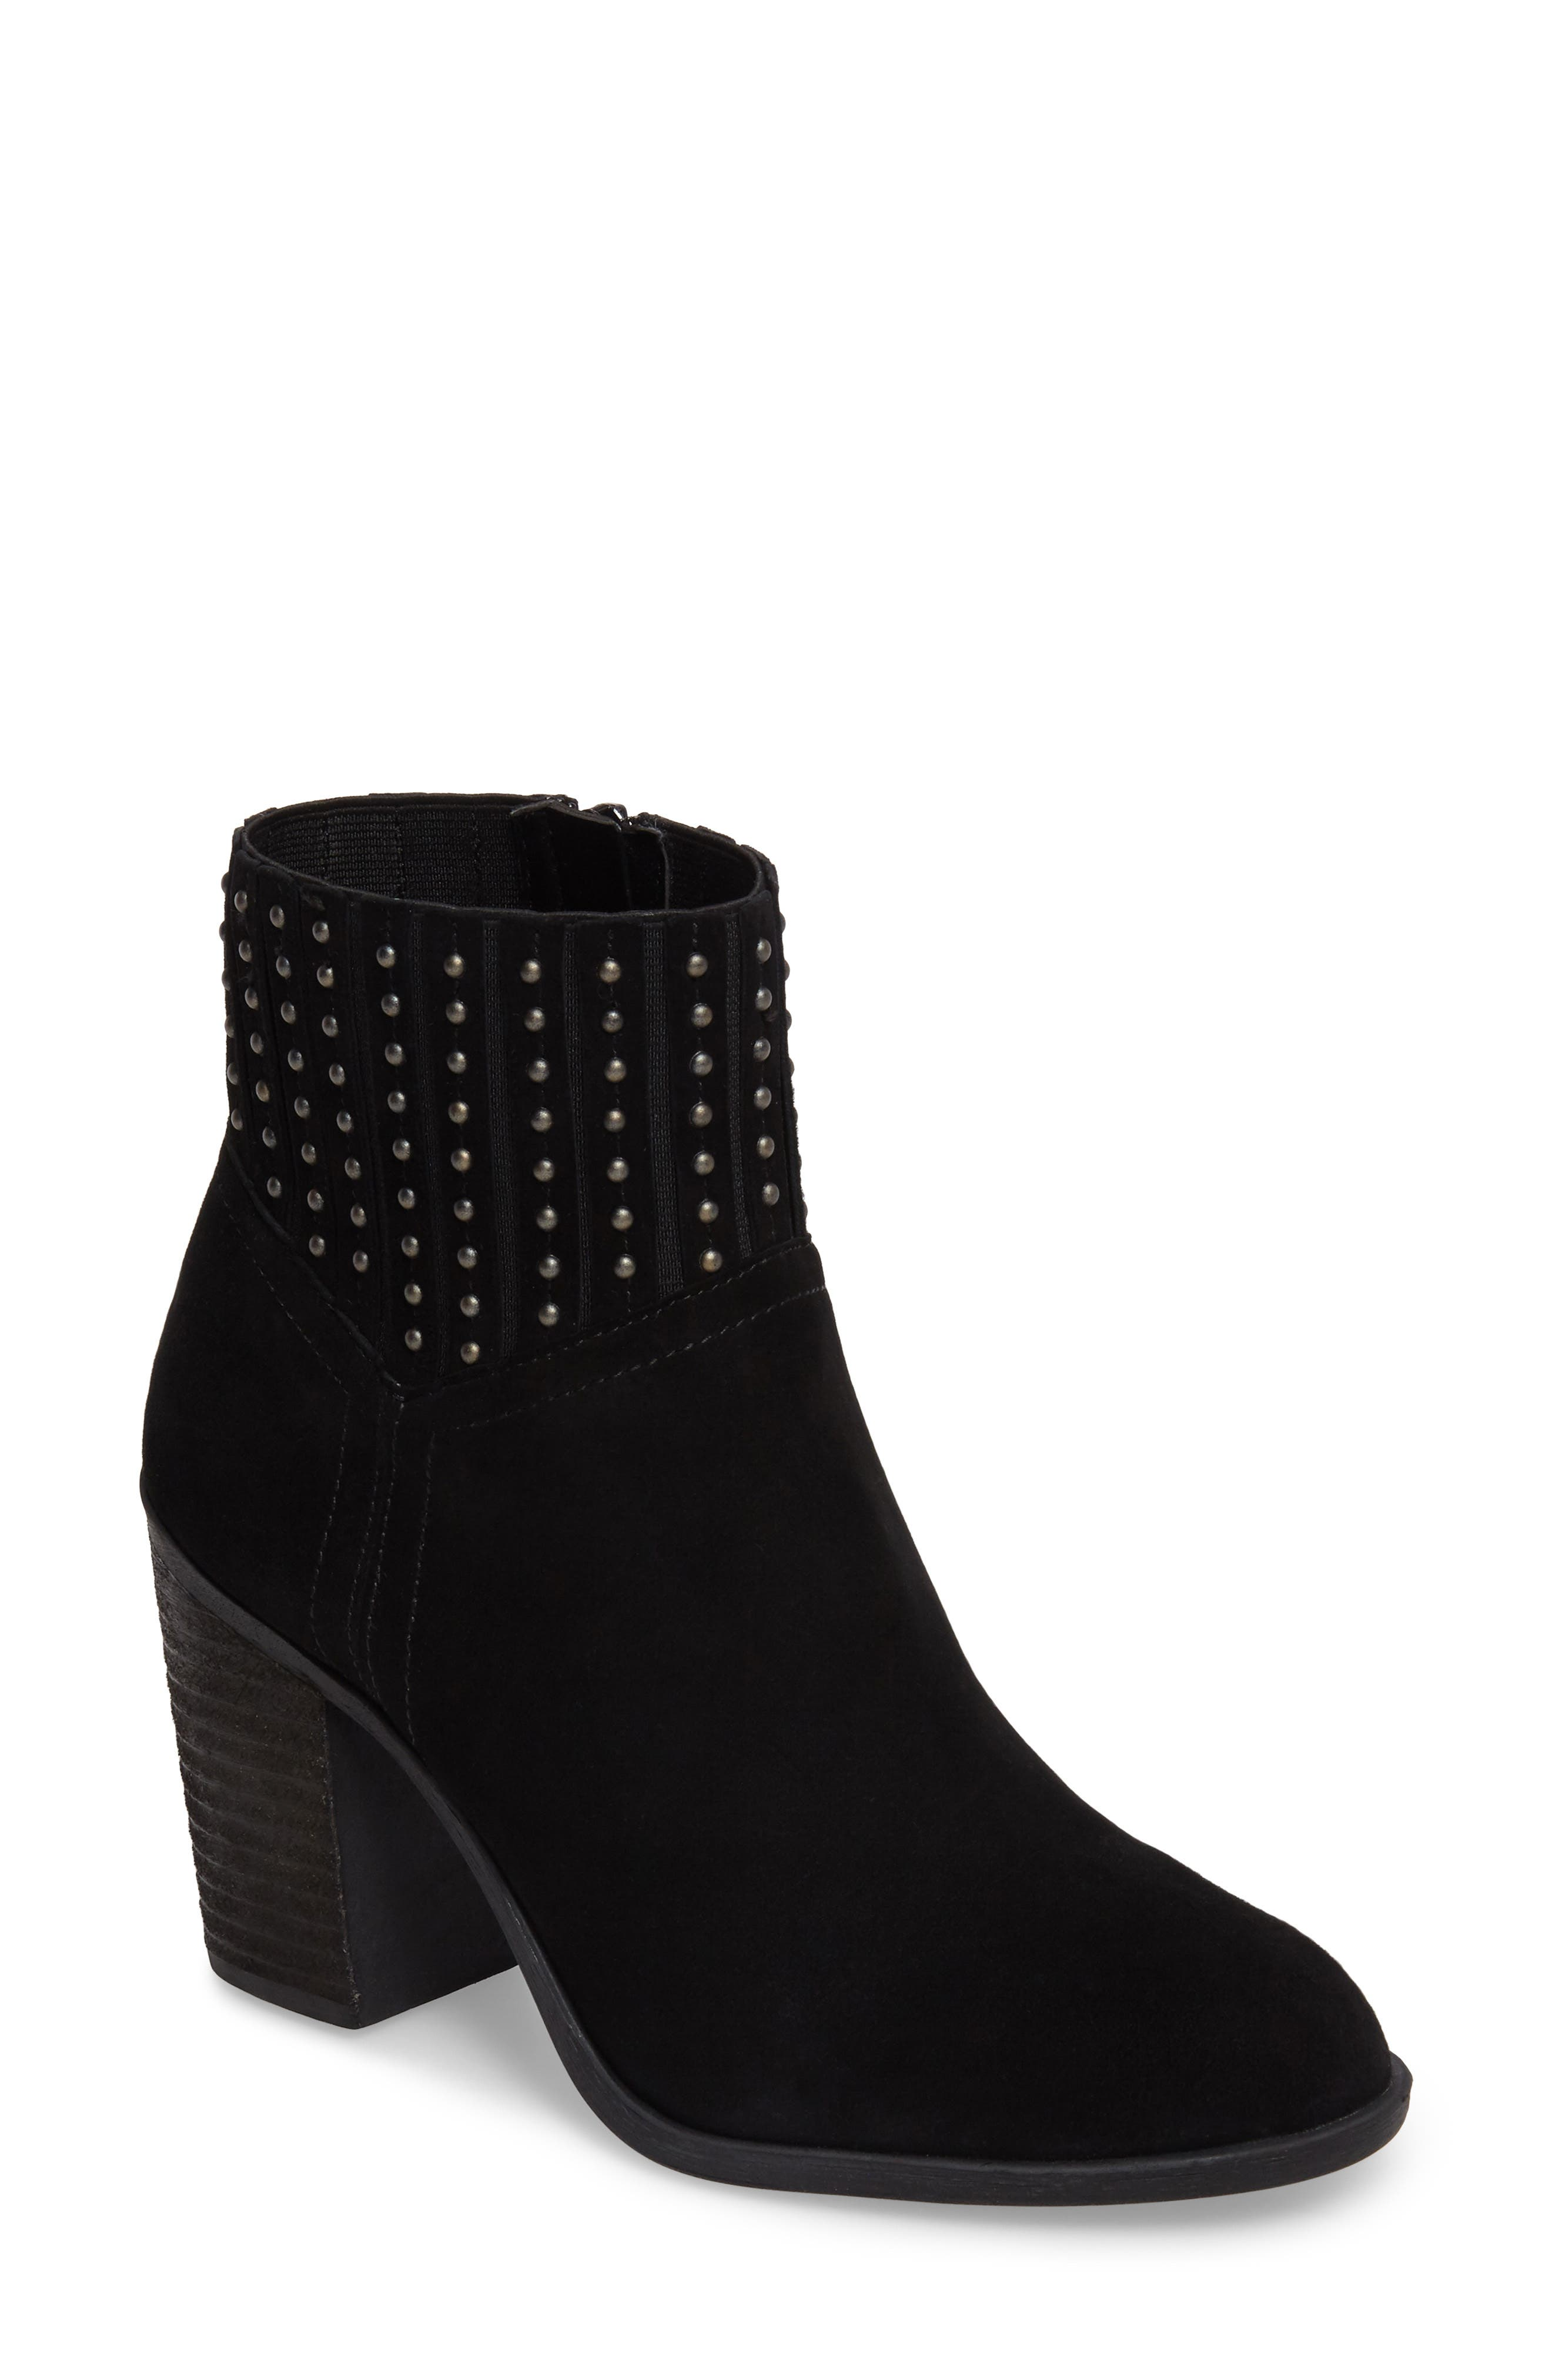 Main Image - Lucky Brand Salome Embellished Bootie (Women)